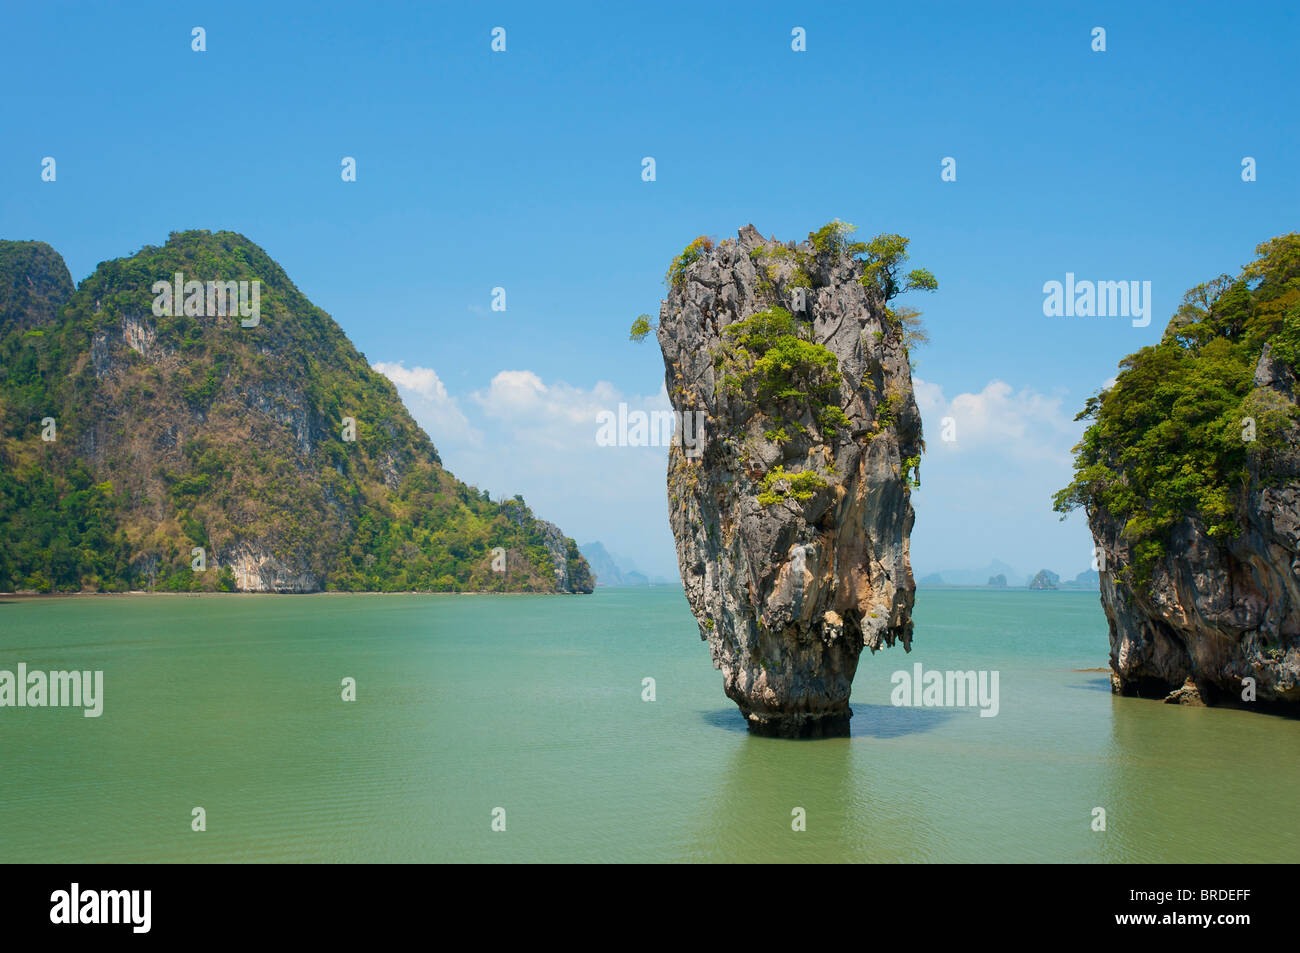 L'île de James Bond, le Parc National de la baie de Phang Nga, Phuket, Thailand Photo Stock